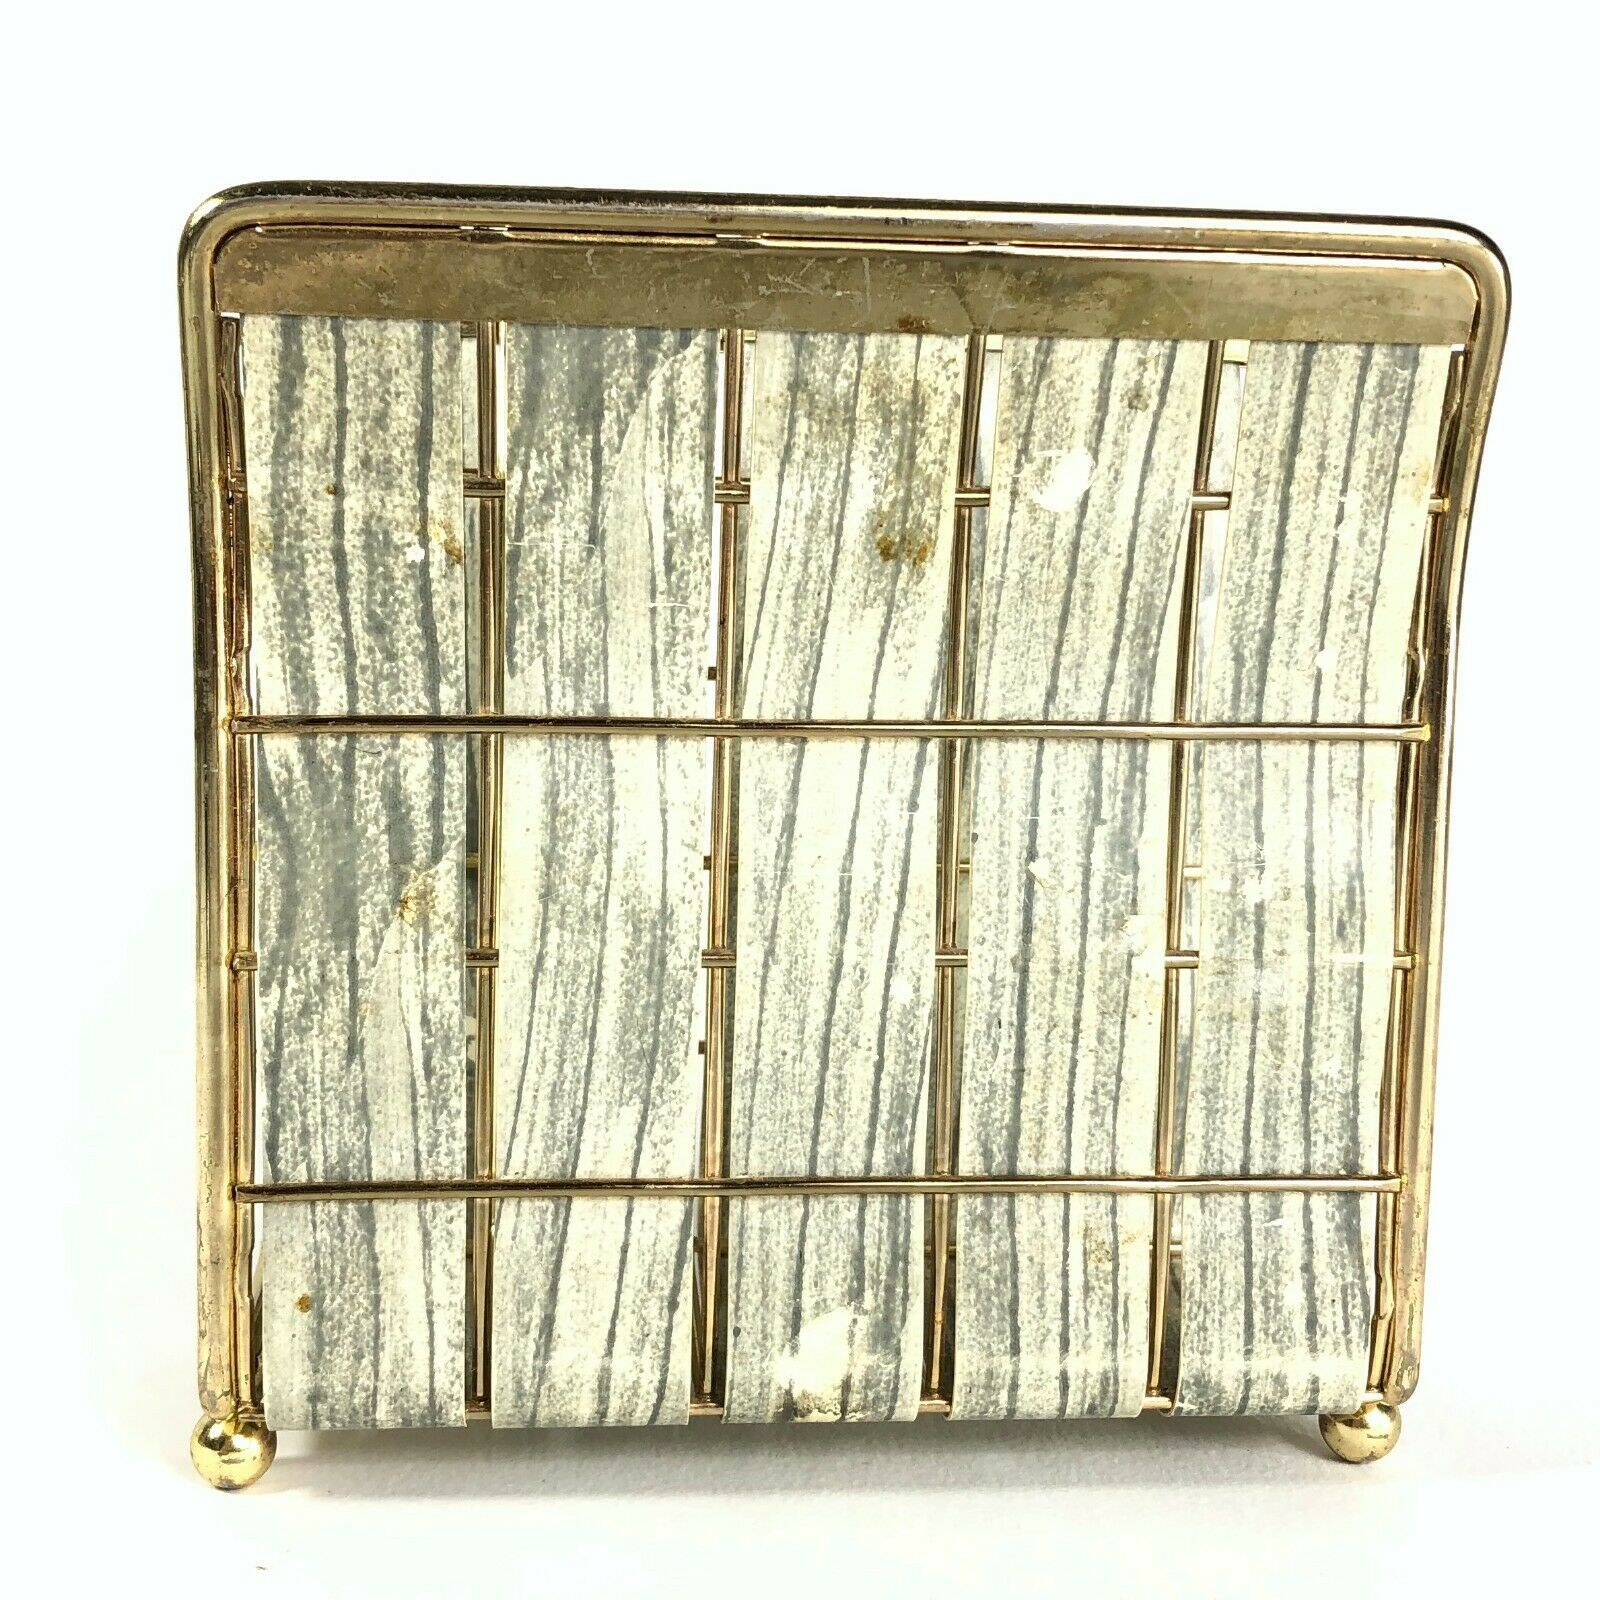 Vintage Mid Century Modern Wire Metal Napkin Holder - Woven Gray Faux Wood